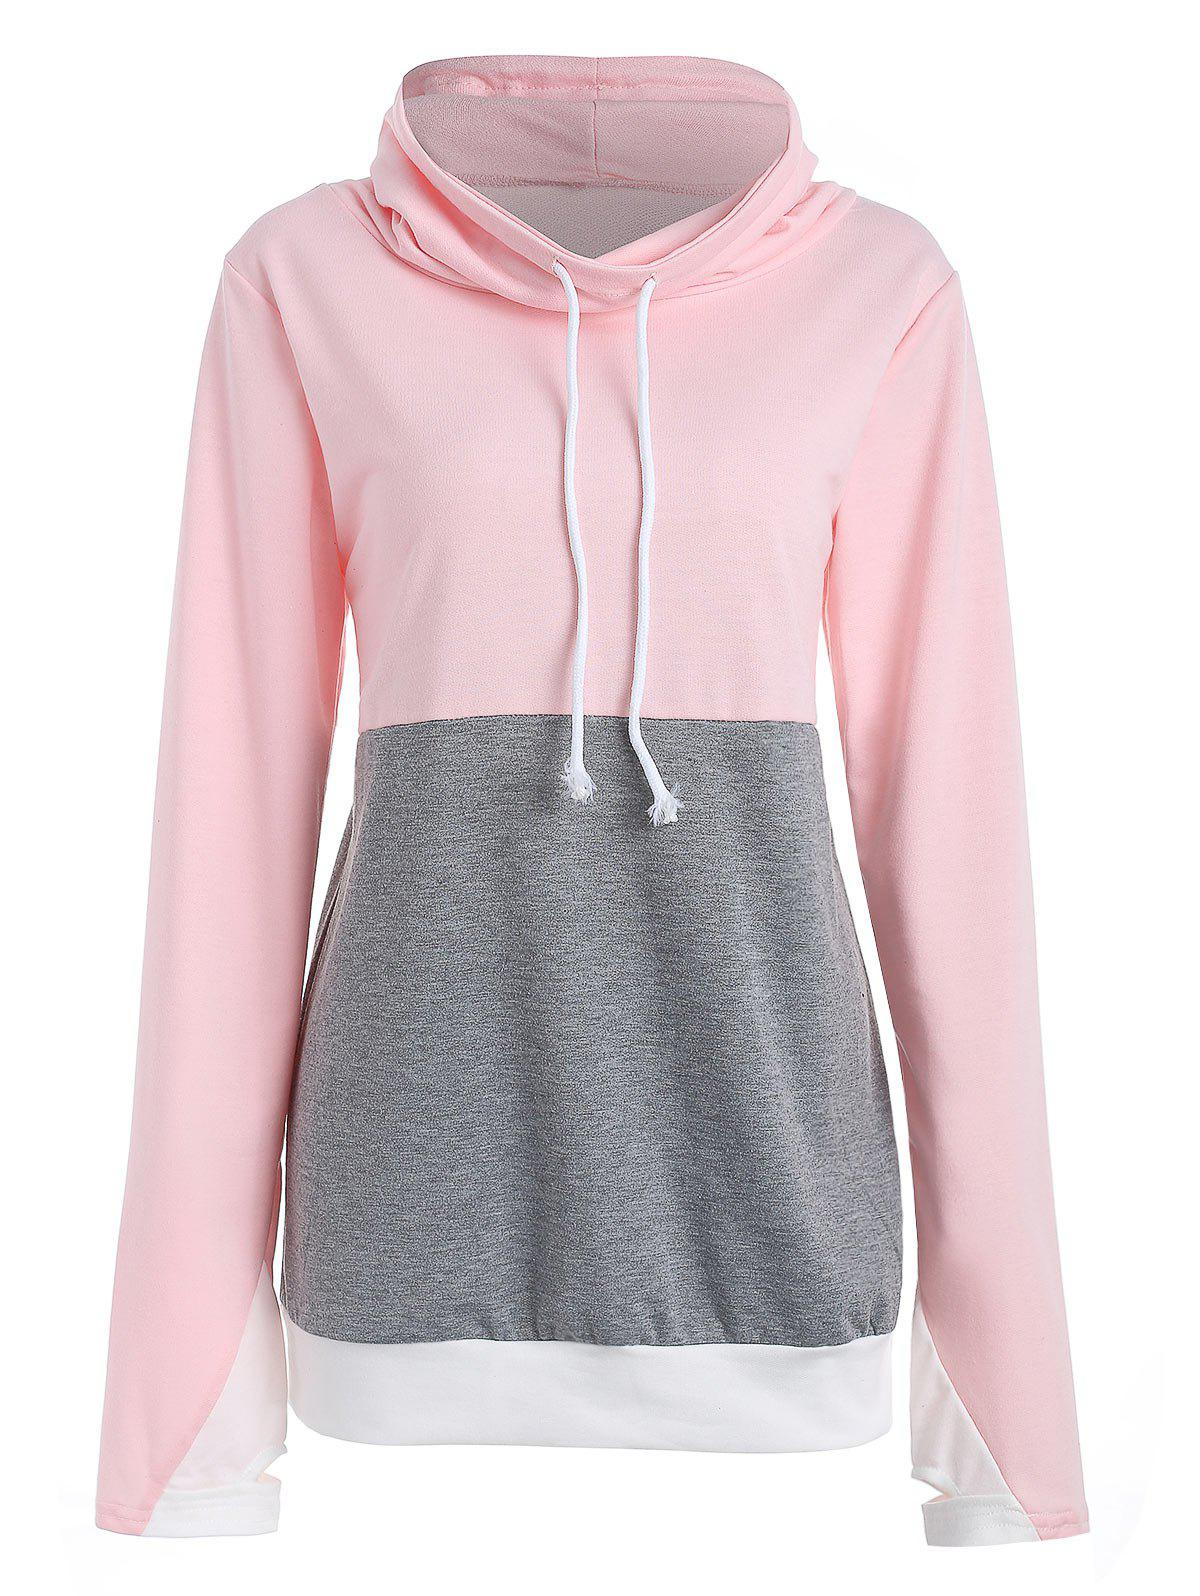 Chic Drawstring Color Block Sweatshirt